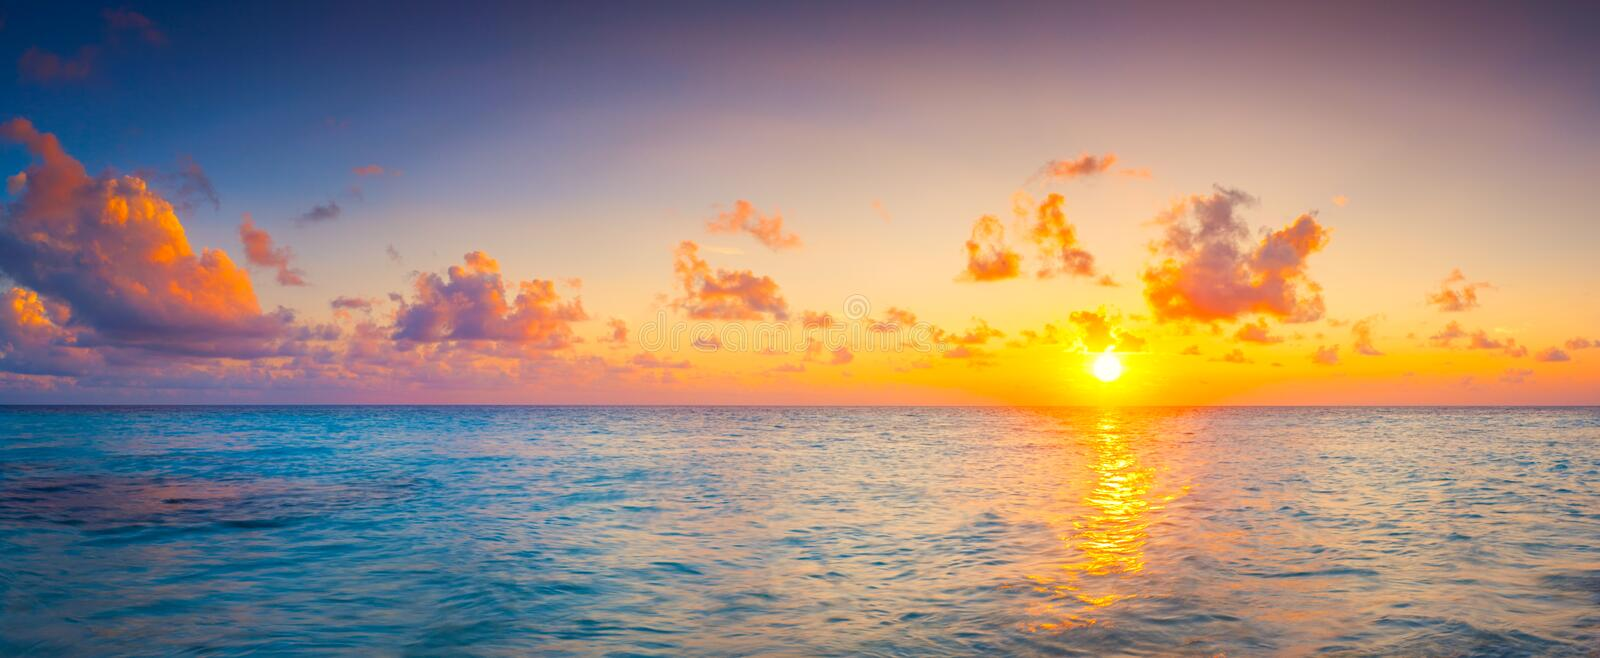 Beautiful colorful sunrise at the sea with dramatic clouds and sun shining in vintage style panorama.  royalty free stock photography